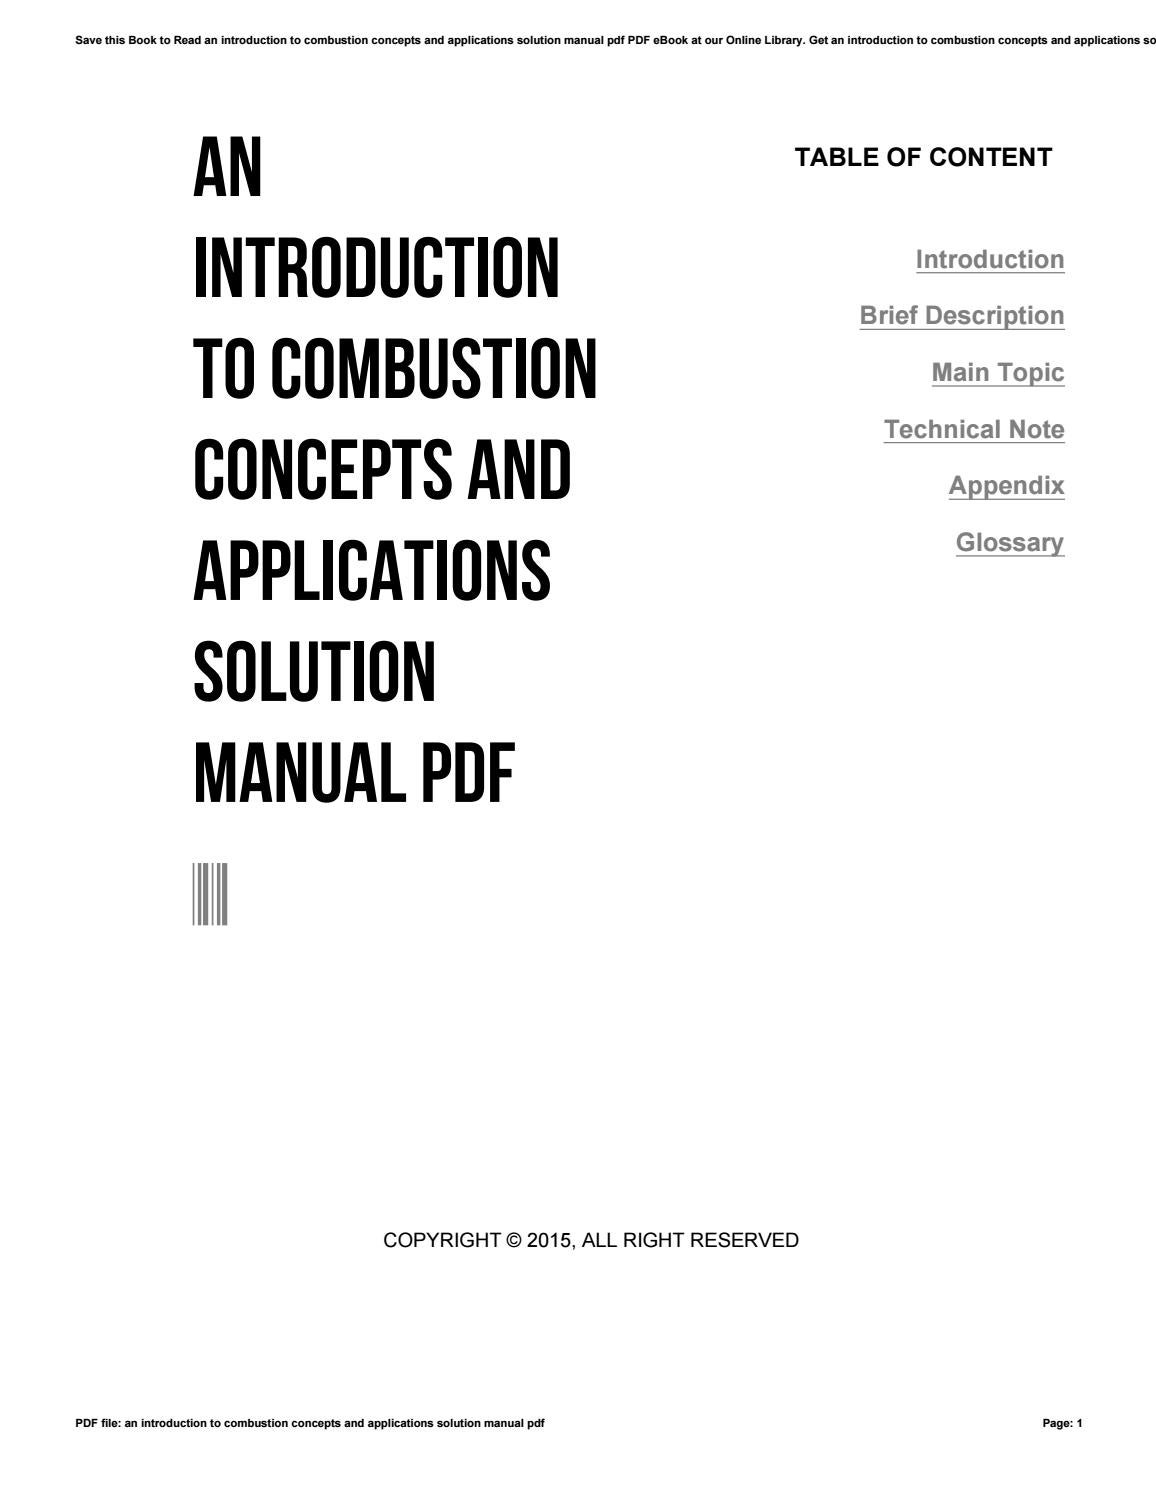 An introduction to combustion concepts and applications solution manual pdf  by sroff5 - issuu